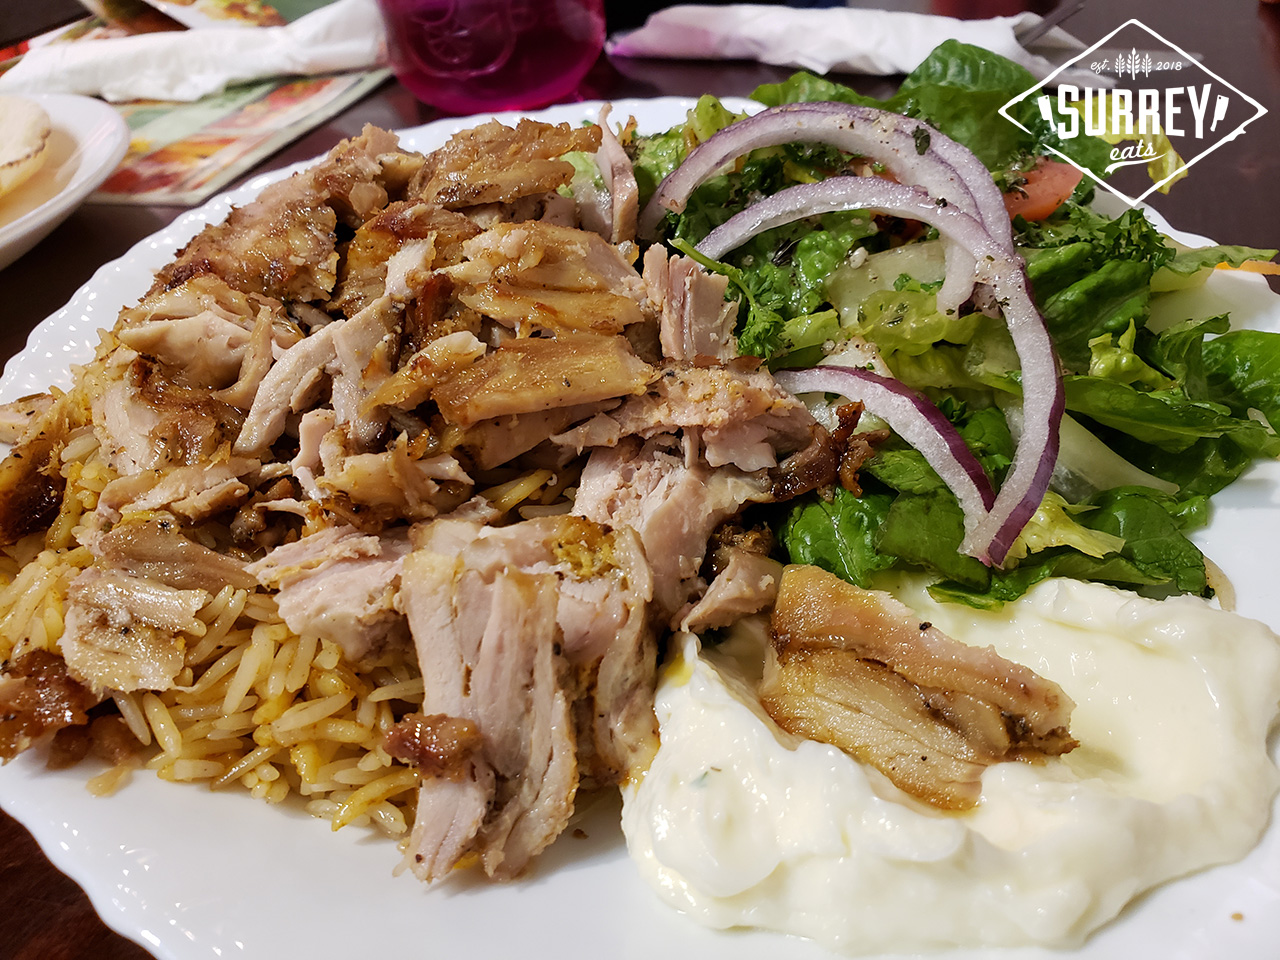 A Chicken Shawarma platter from Kababji Grill in Surrey with rice, salad, tzatziki